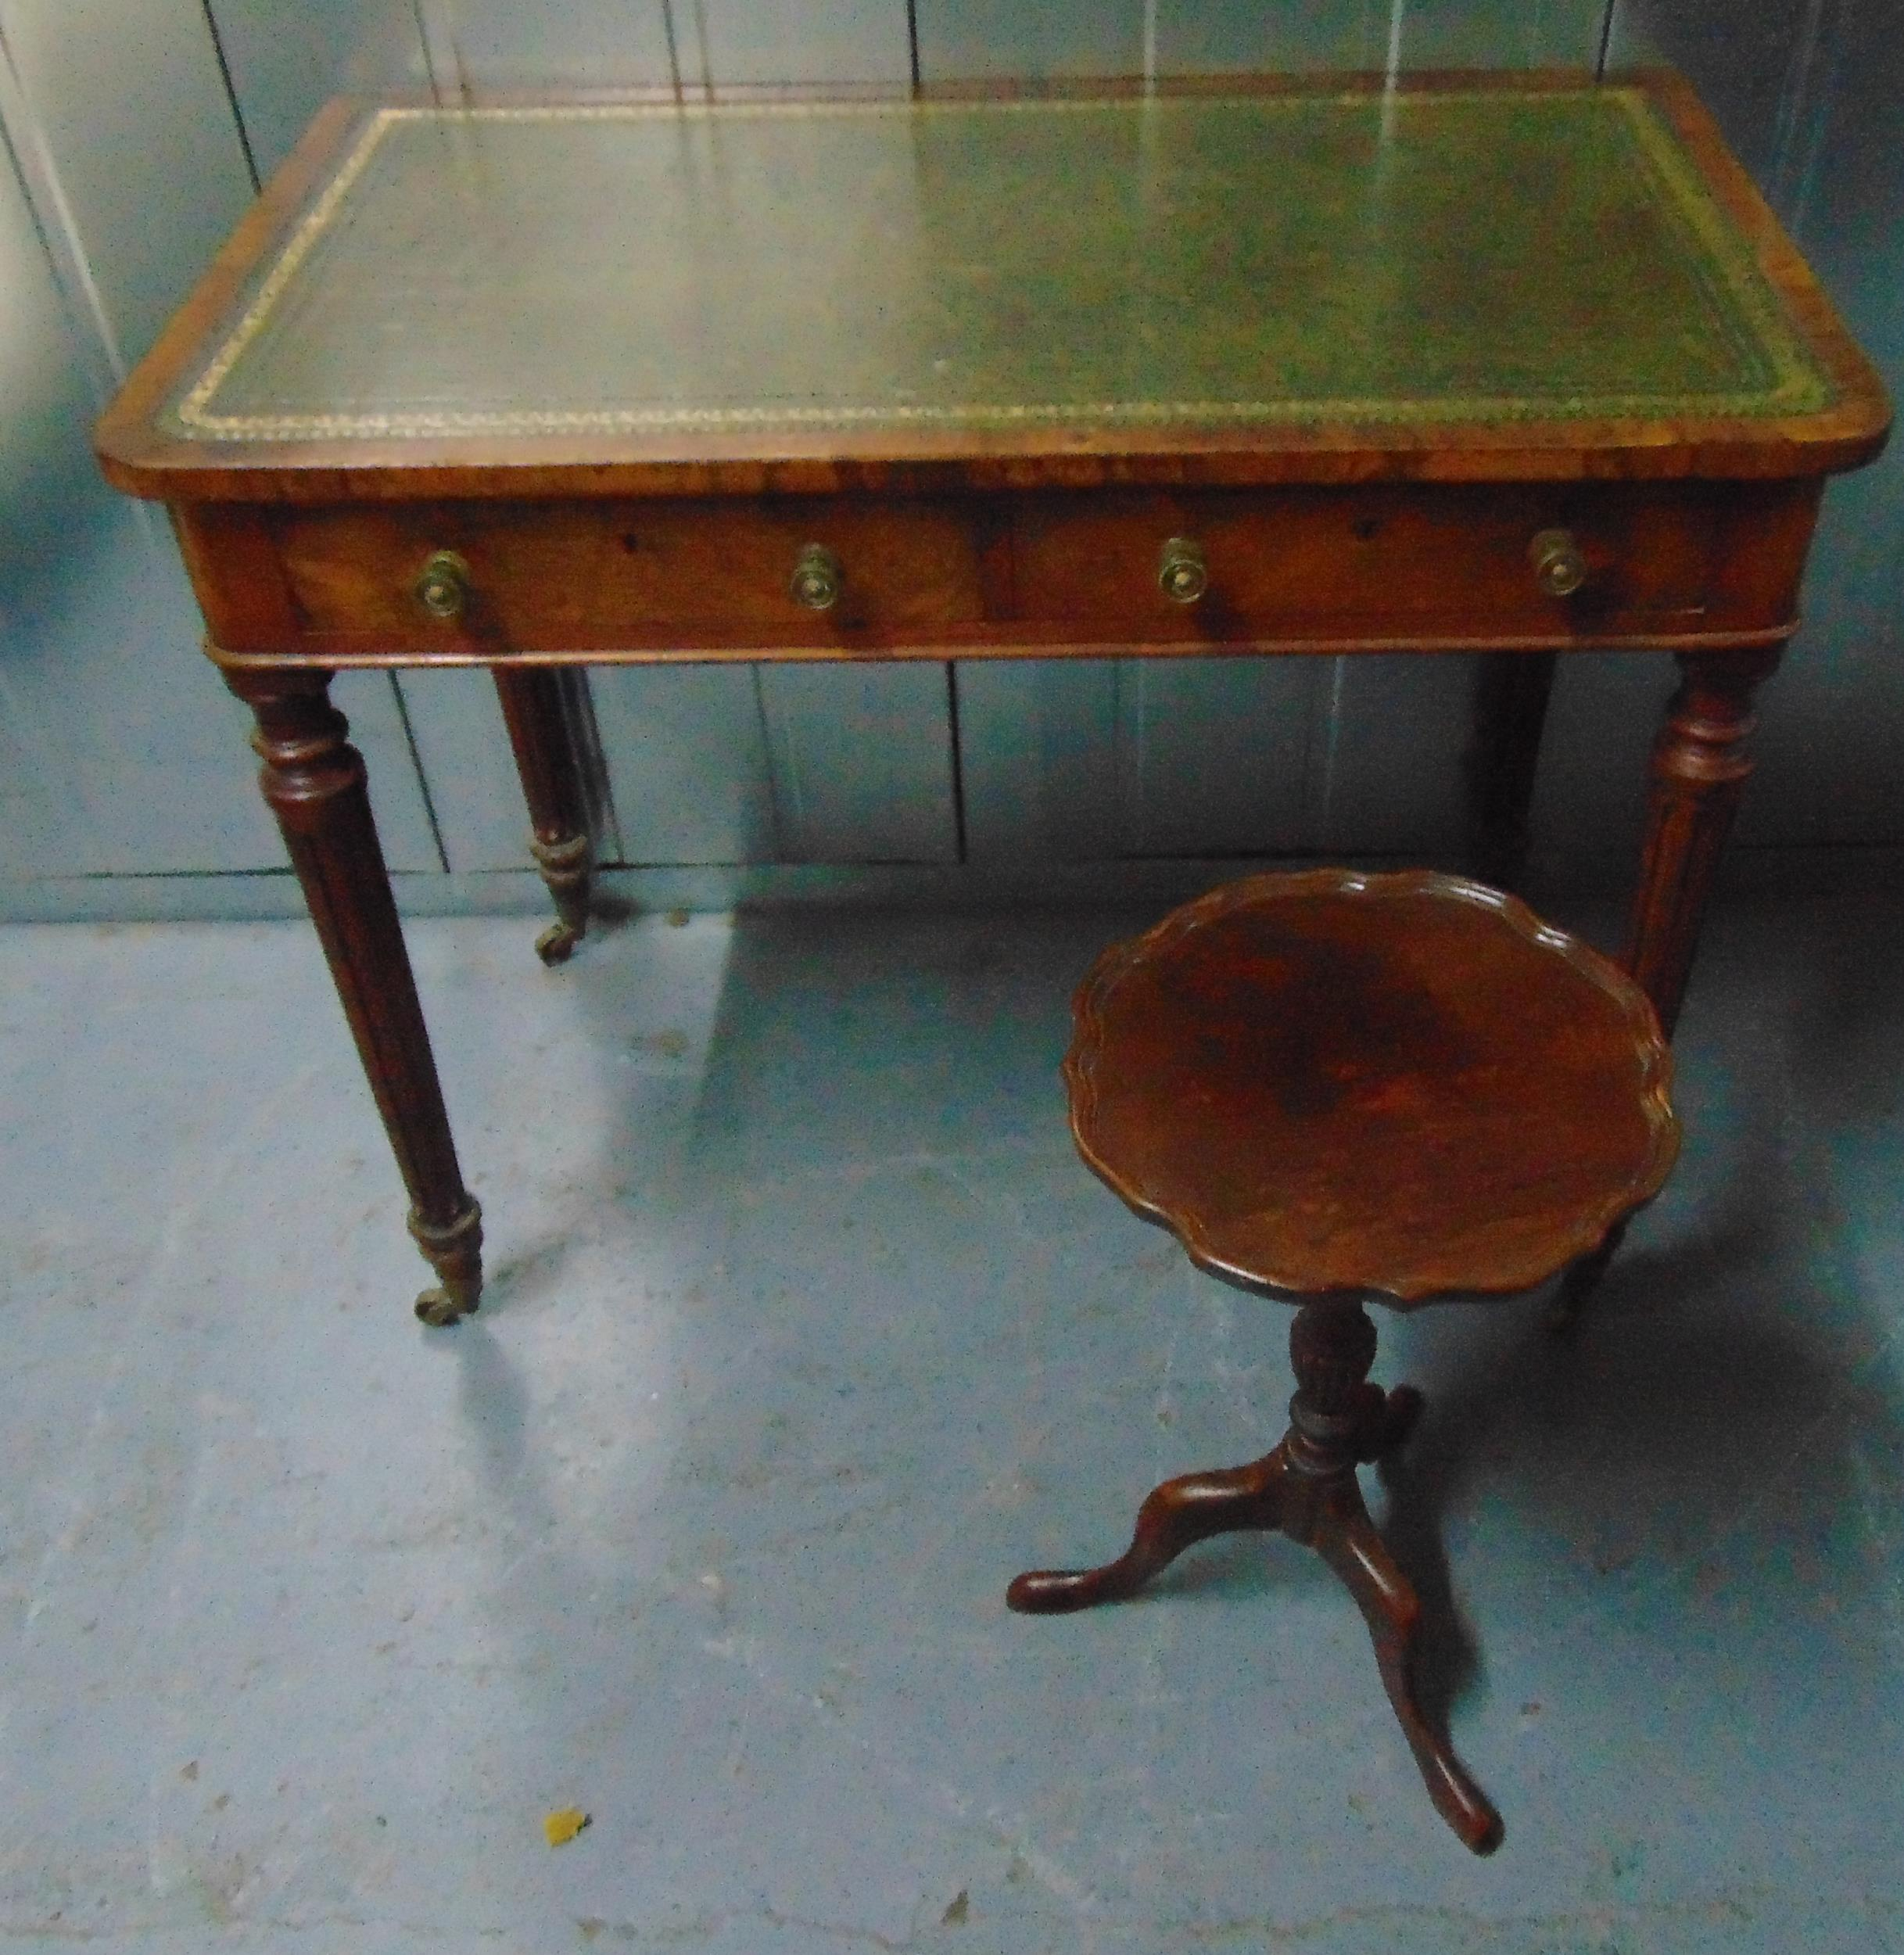 An Edwardian rectangular hall table with tooled leather top, two drawers on four fluted tapering